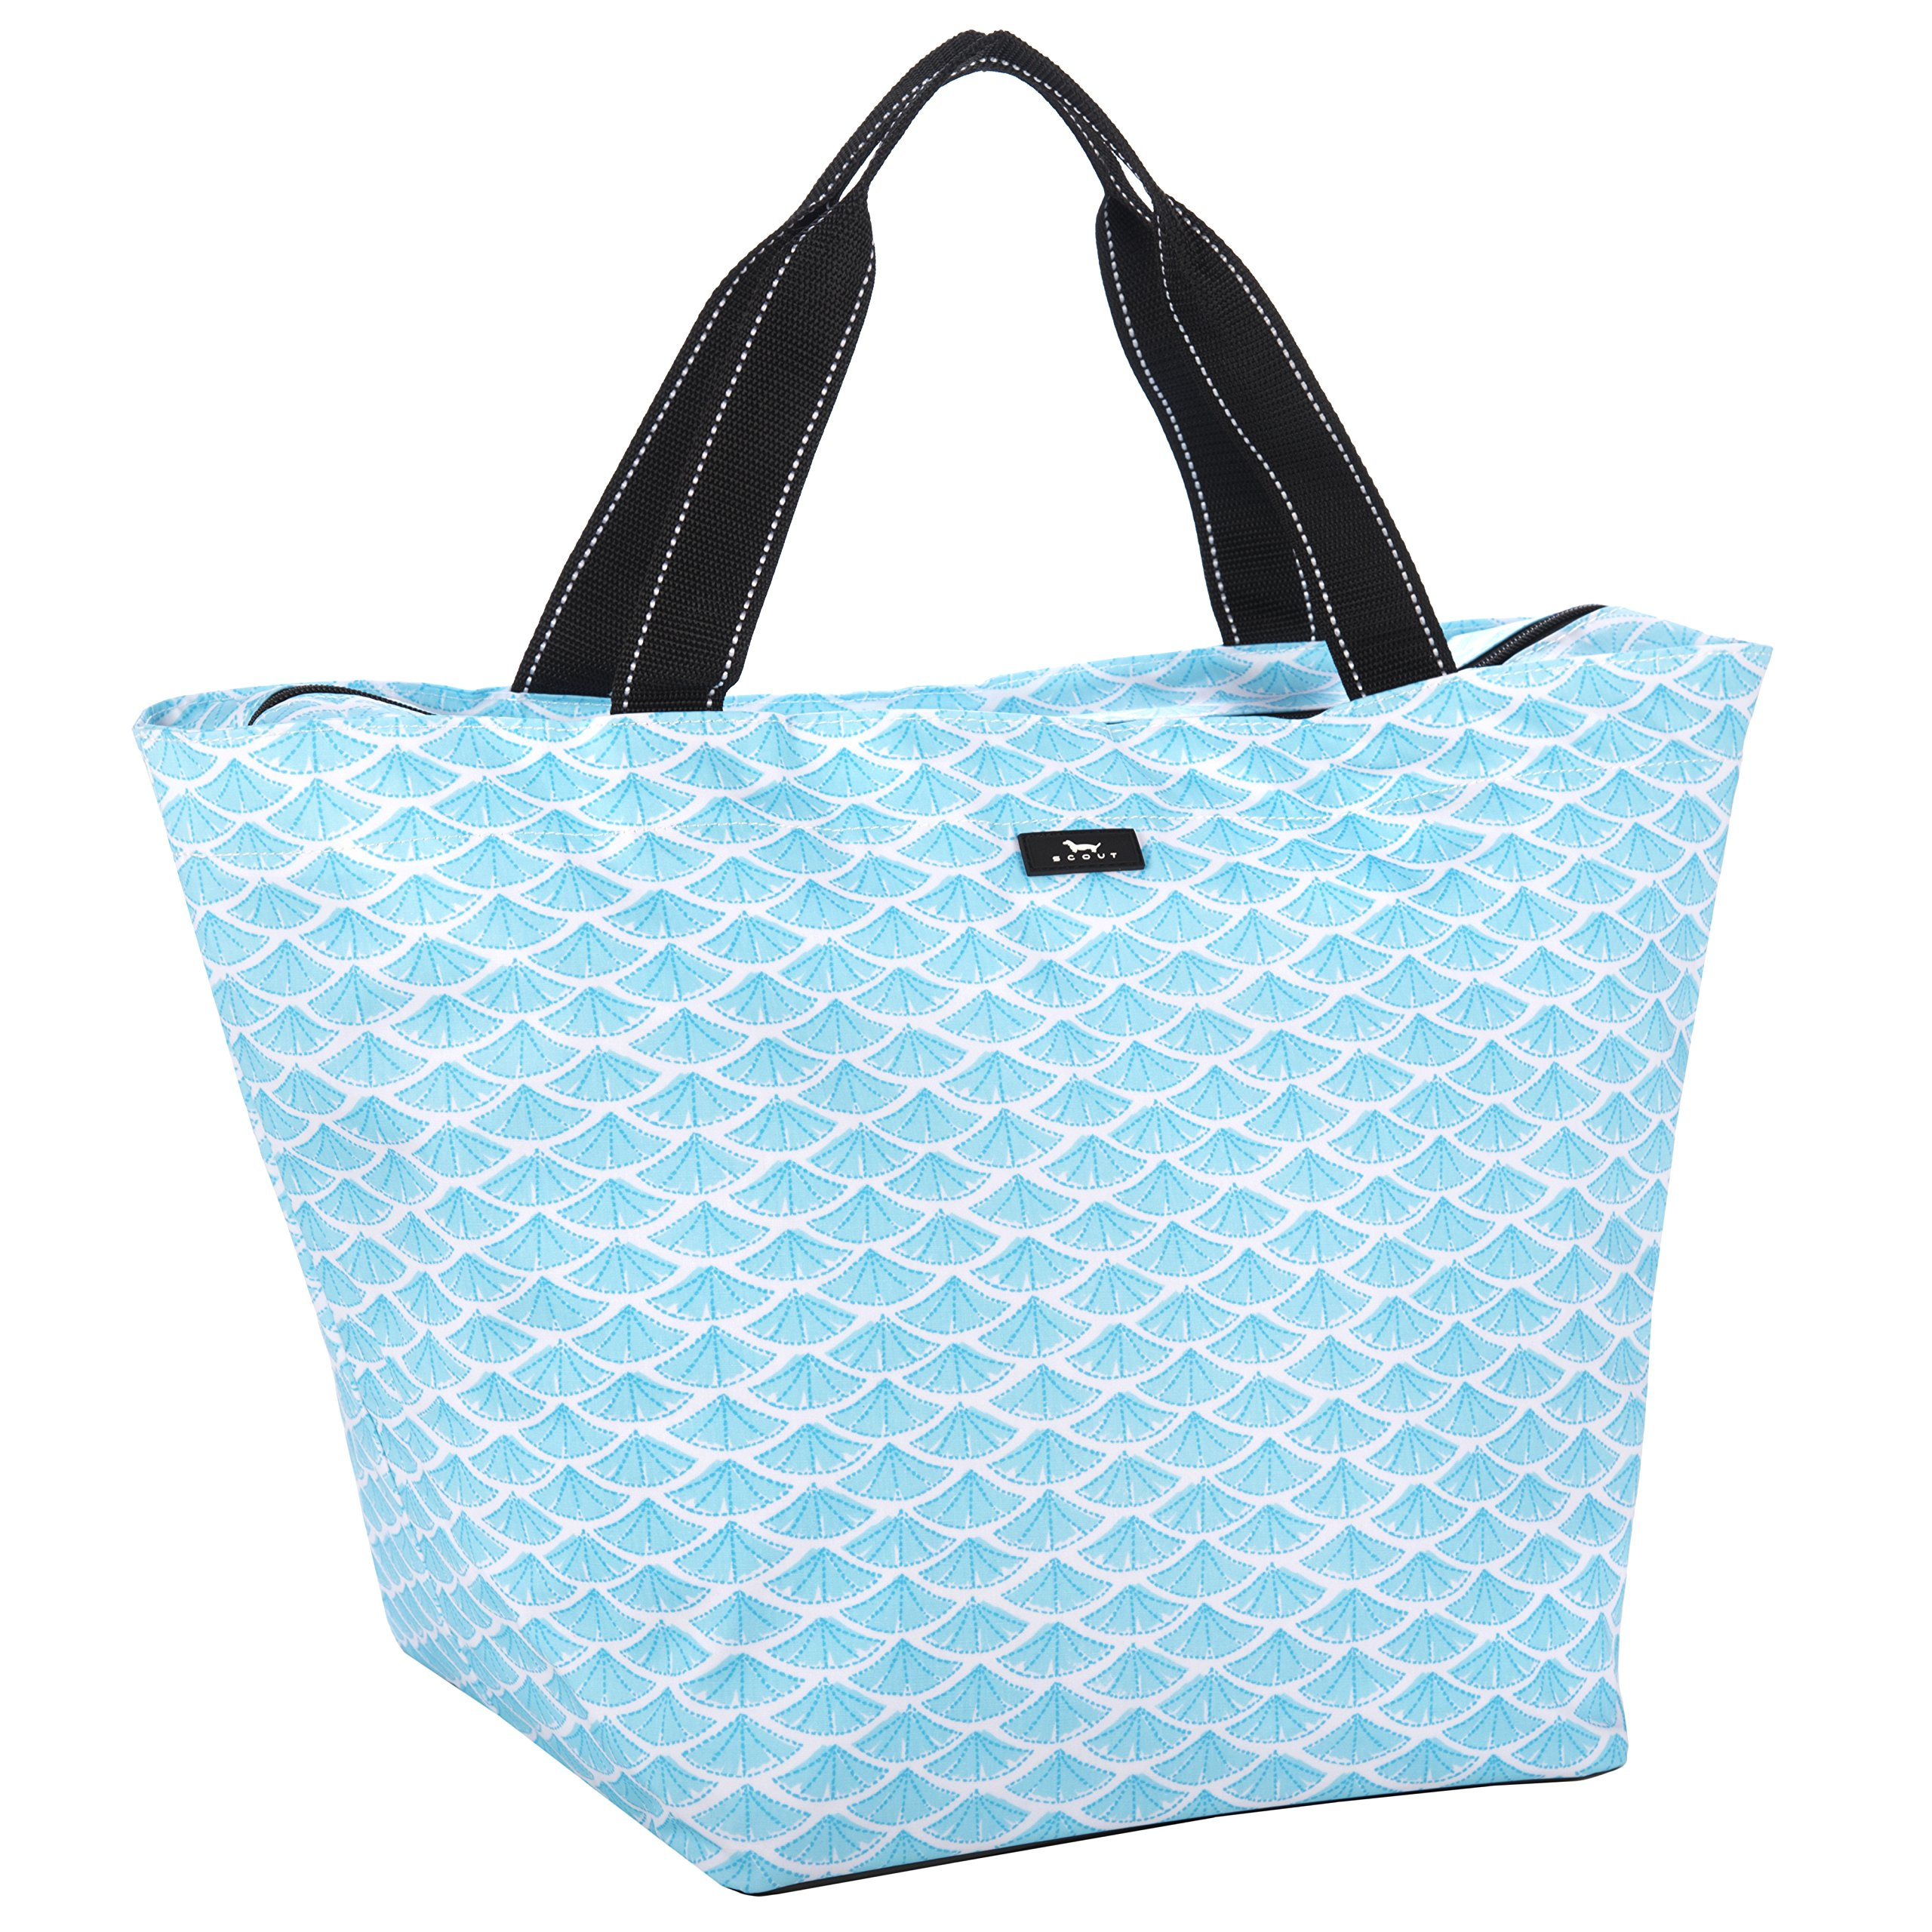 SCOUT Weekender Travel Tote Carry On Bag, Internal Zippered Pouch, Water Resistant, Zips Closed, Swimfan